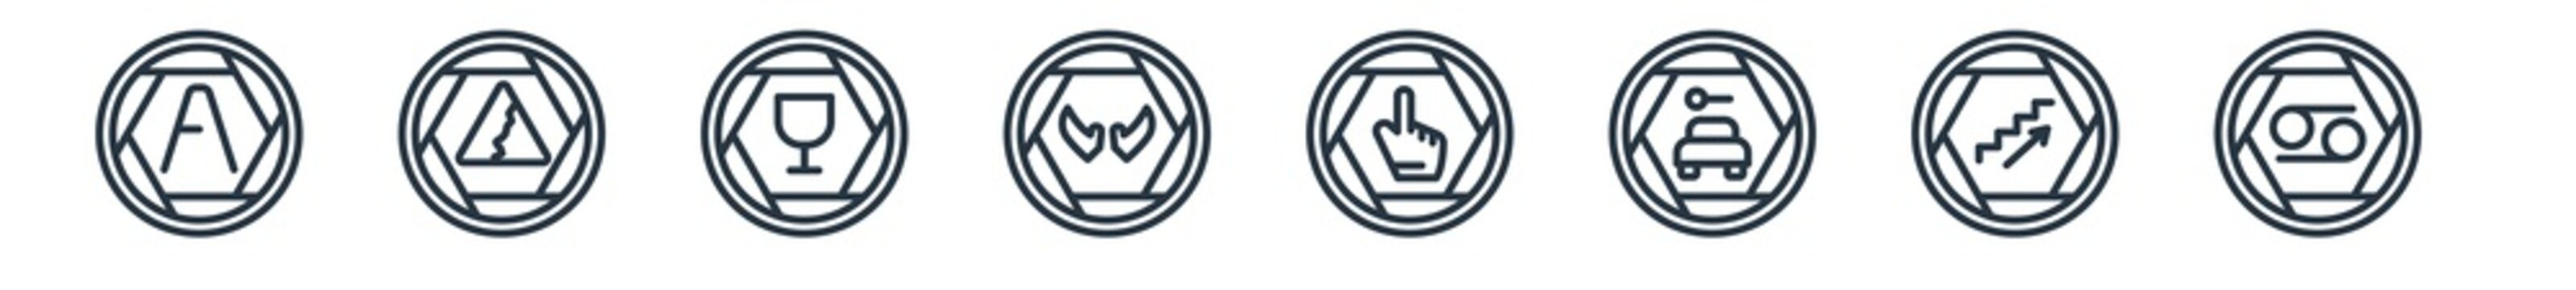 linear set of signs outline icons. line vector icons such as letter a, null, broken glass, null, thumb up filled gesture, horoscope vector illustration.